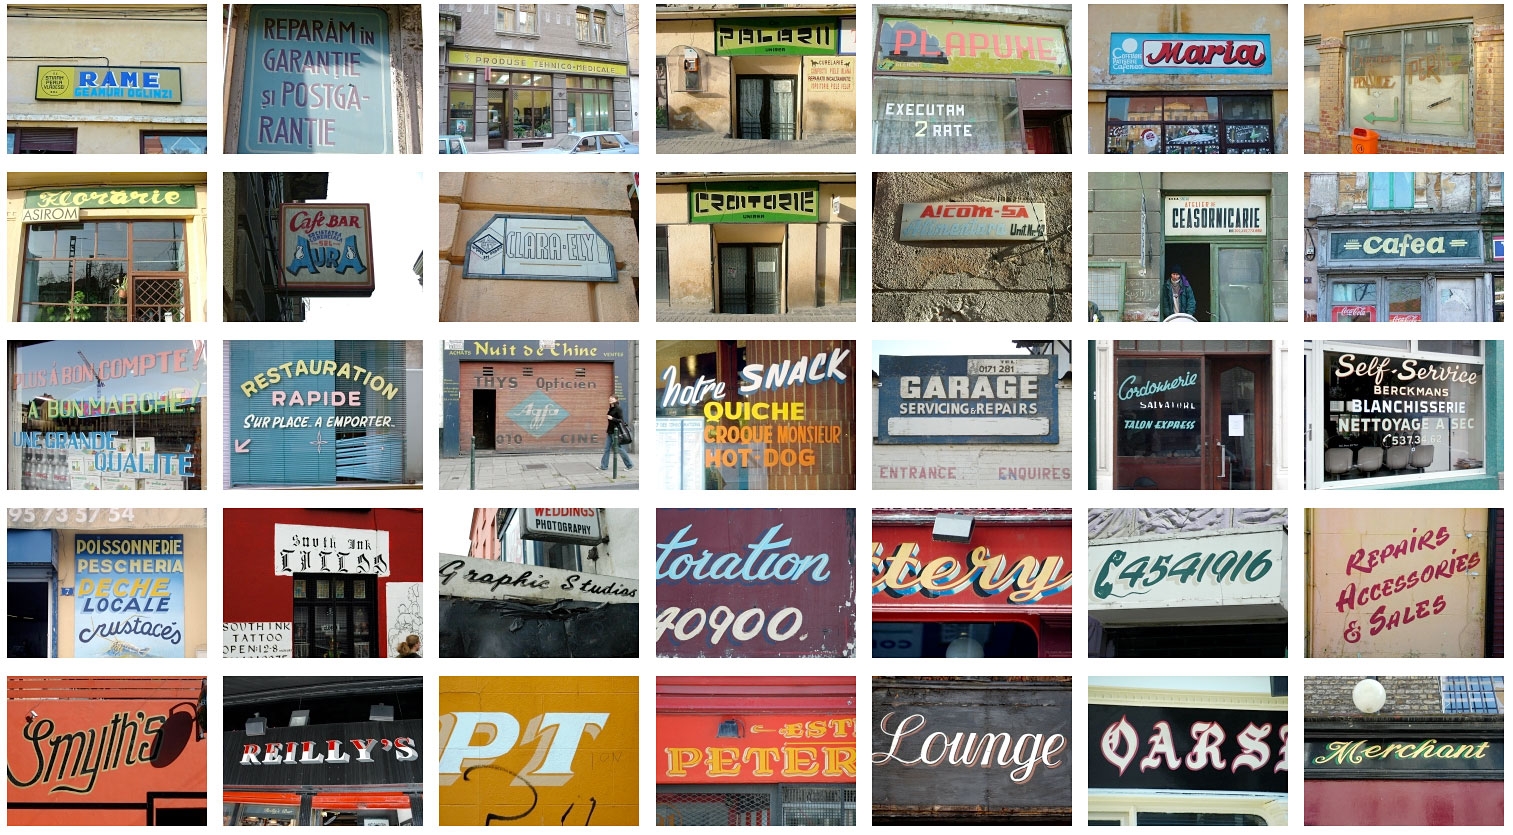 TypeArchive — Wonderful image library primarily focused on hand painted signage 01